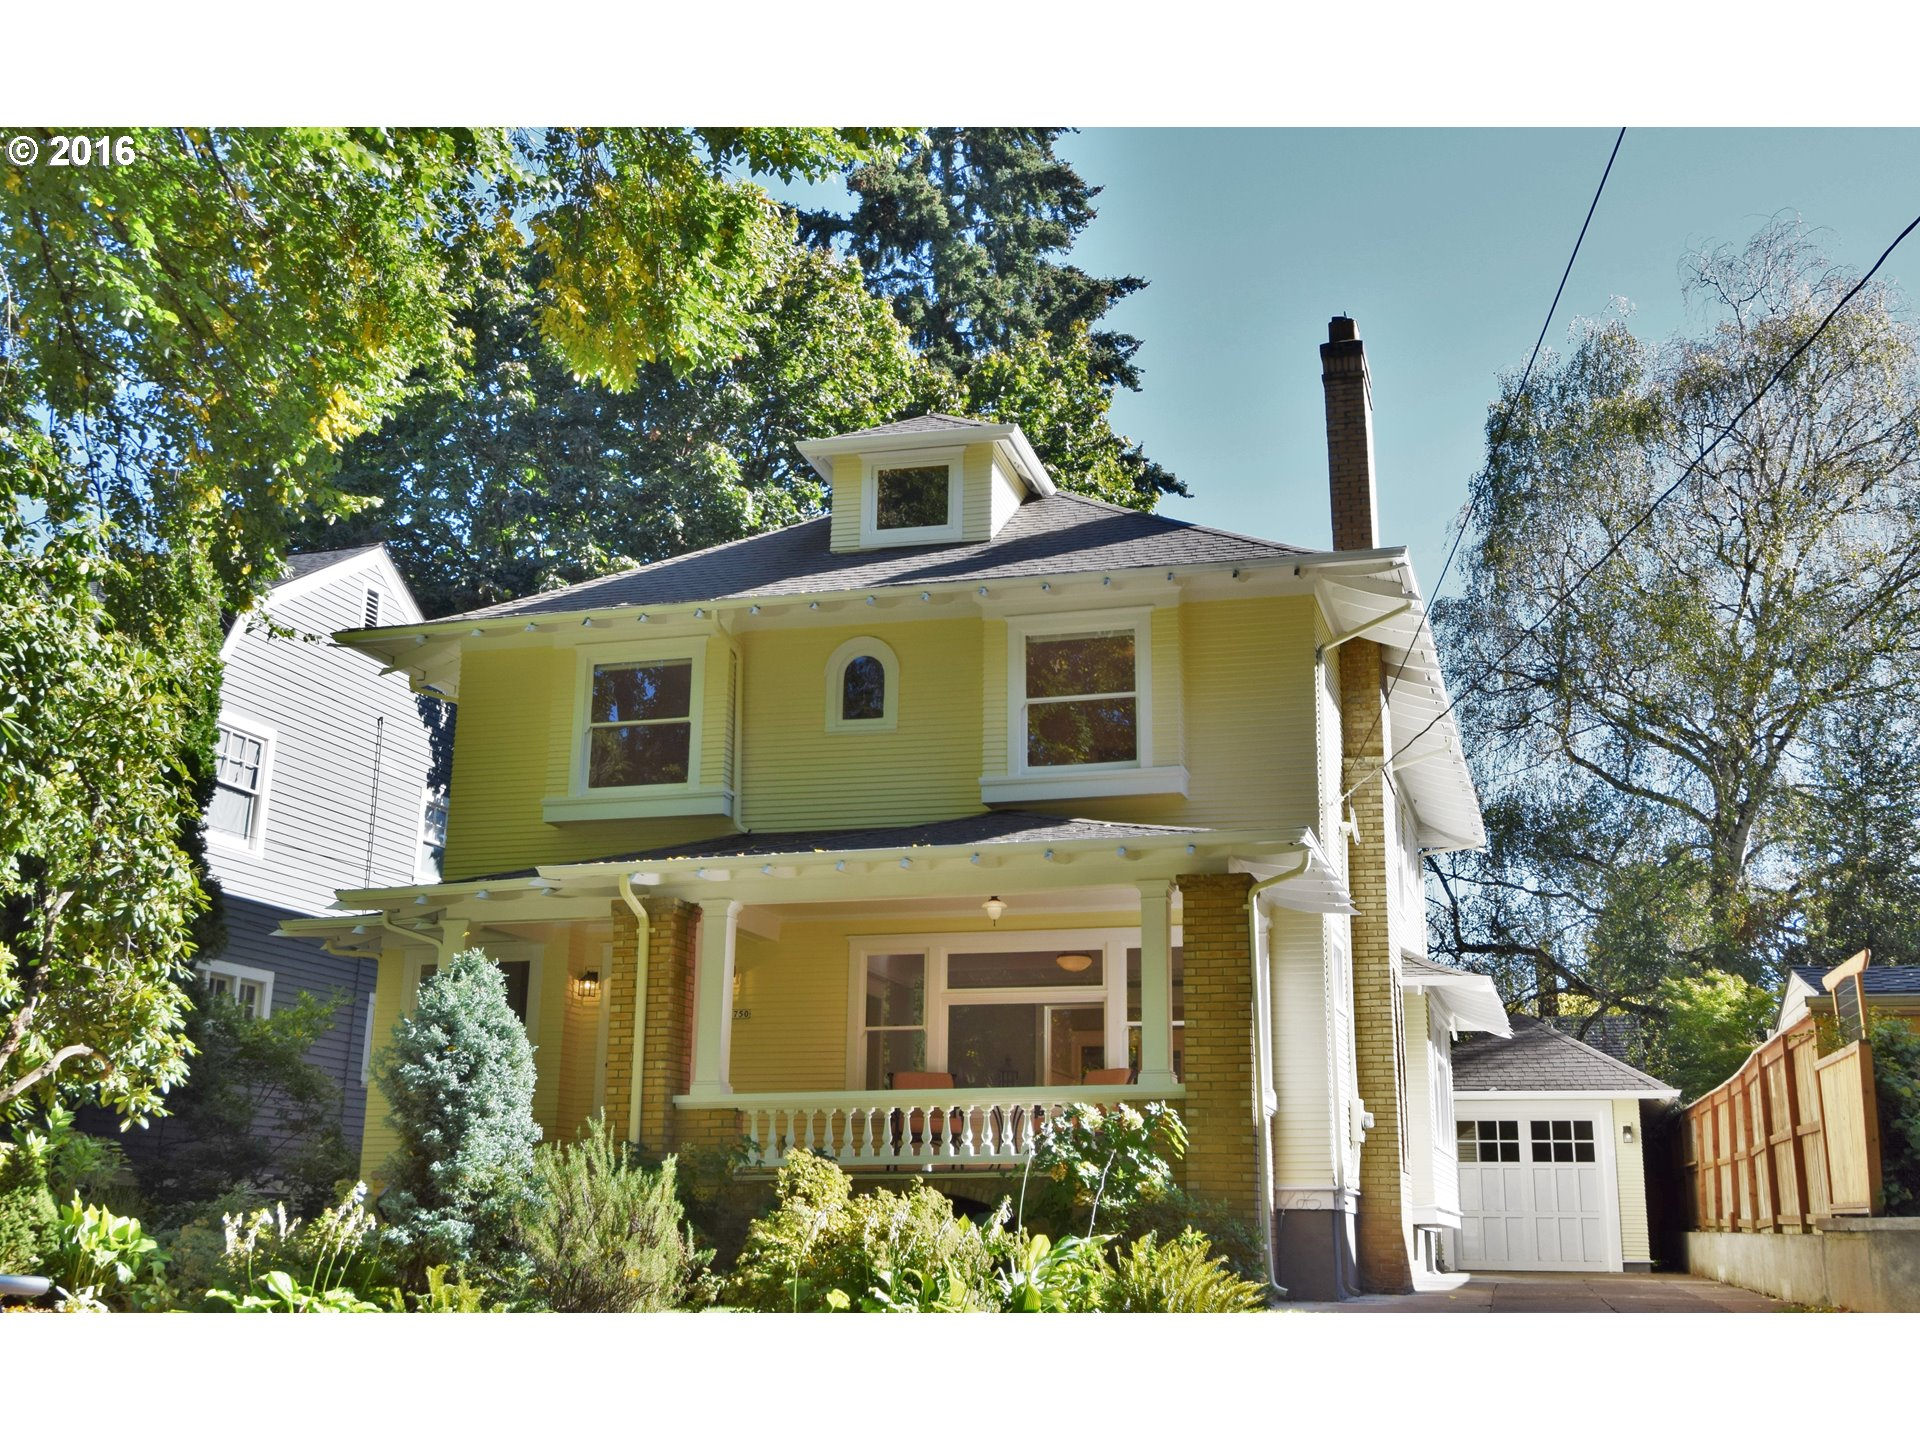 Exquisite house balances historic flavor updated for today.  This home with vintage lighting and molding cast a glamorous spell, while updates and luxury kitchen provide the comfort of a new house.  Luxury master w/ spa-like bath will start every day right.  Four levels of house, four bedrooms, finished basement, and big bonus give family spaces for happy living. Quiet street by Laurelhurst Park: the best of Portland.